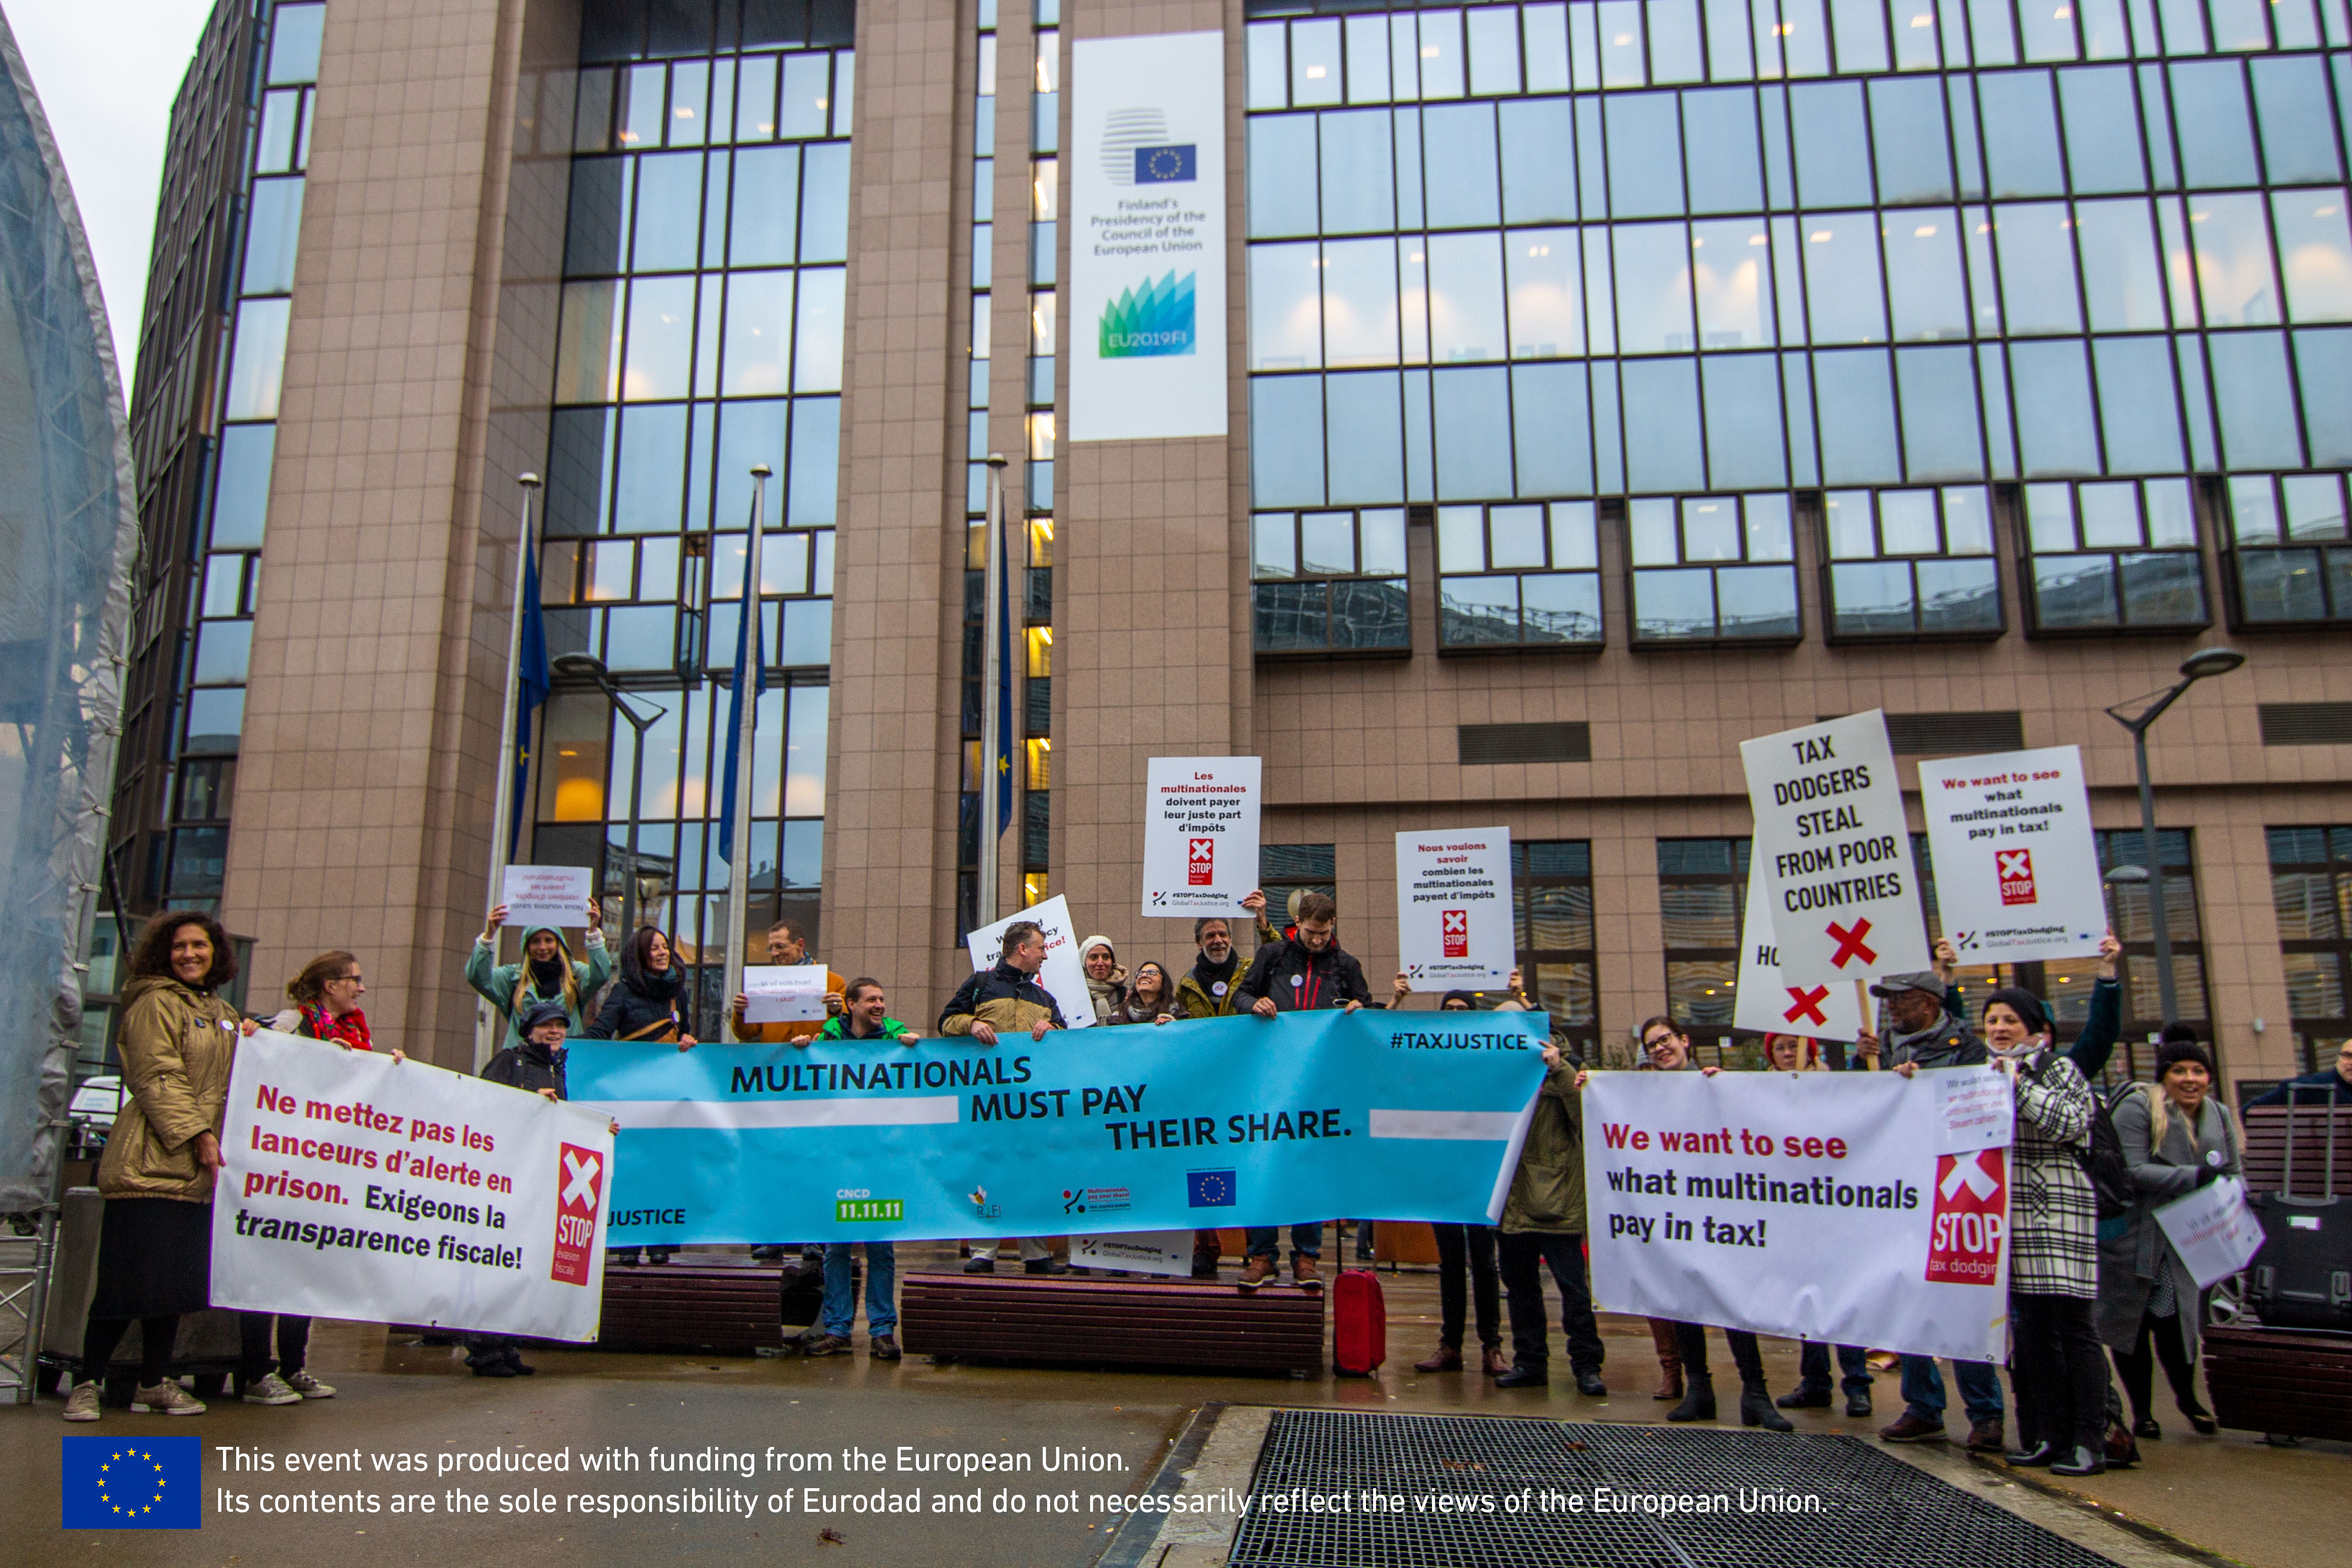 Eurodad and other Brussels-based CSOs stand in front of the European Commission HQ holding placards calling for tax transparency and that mulitnational corporations pay their share.